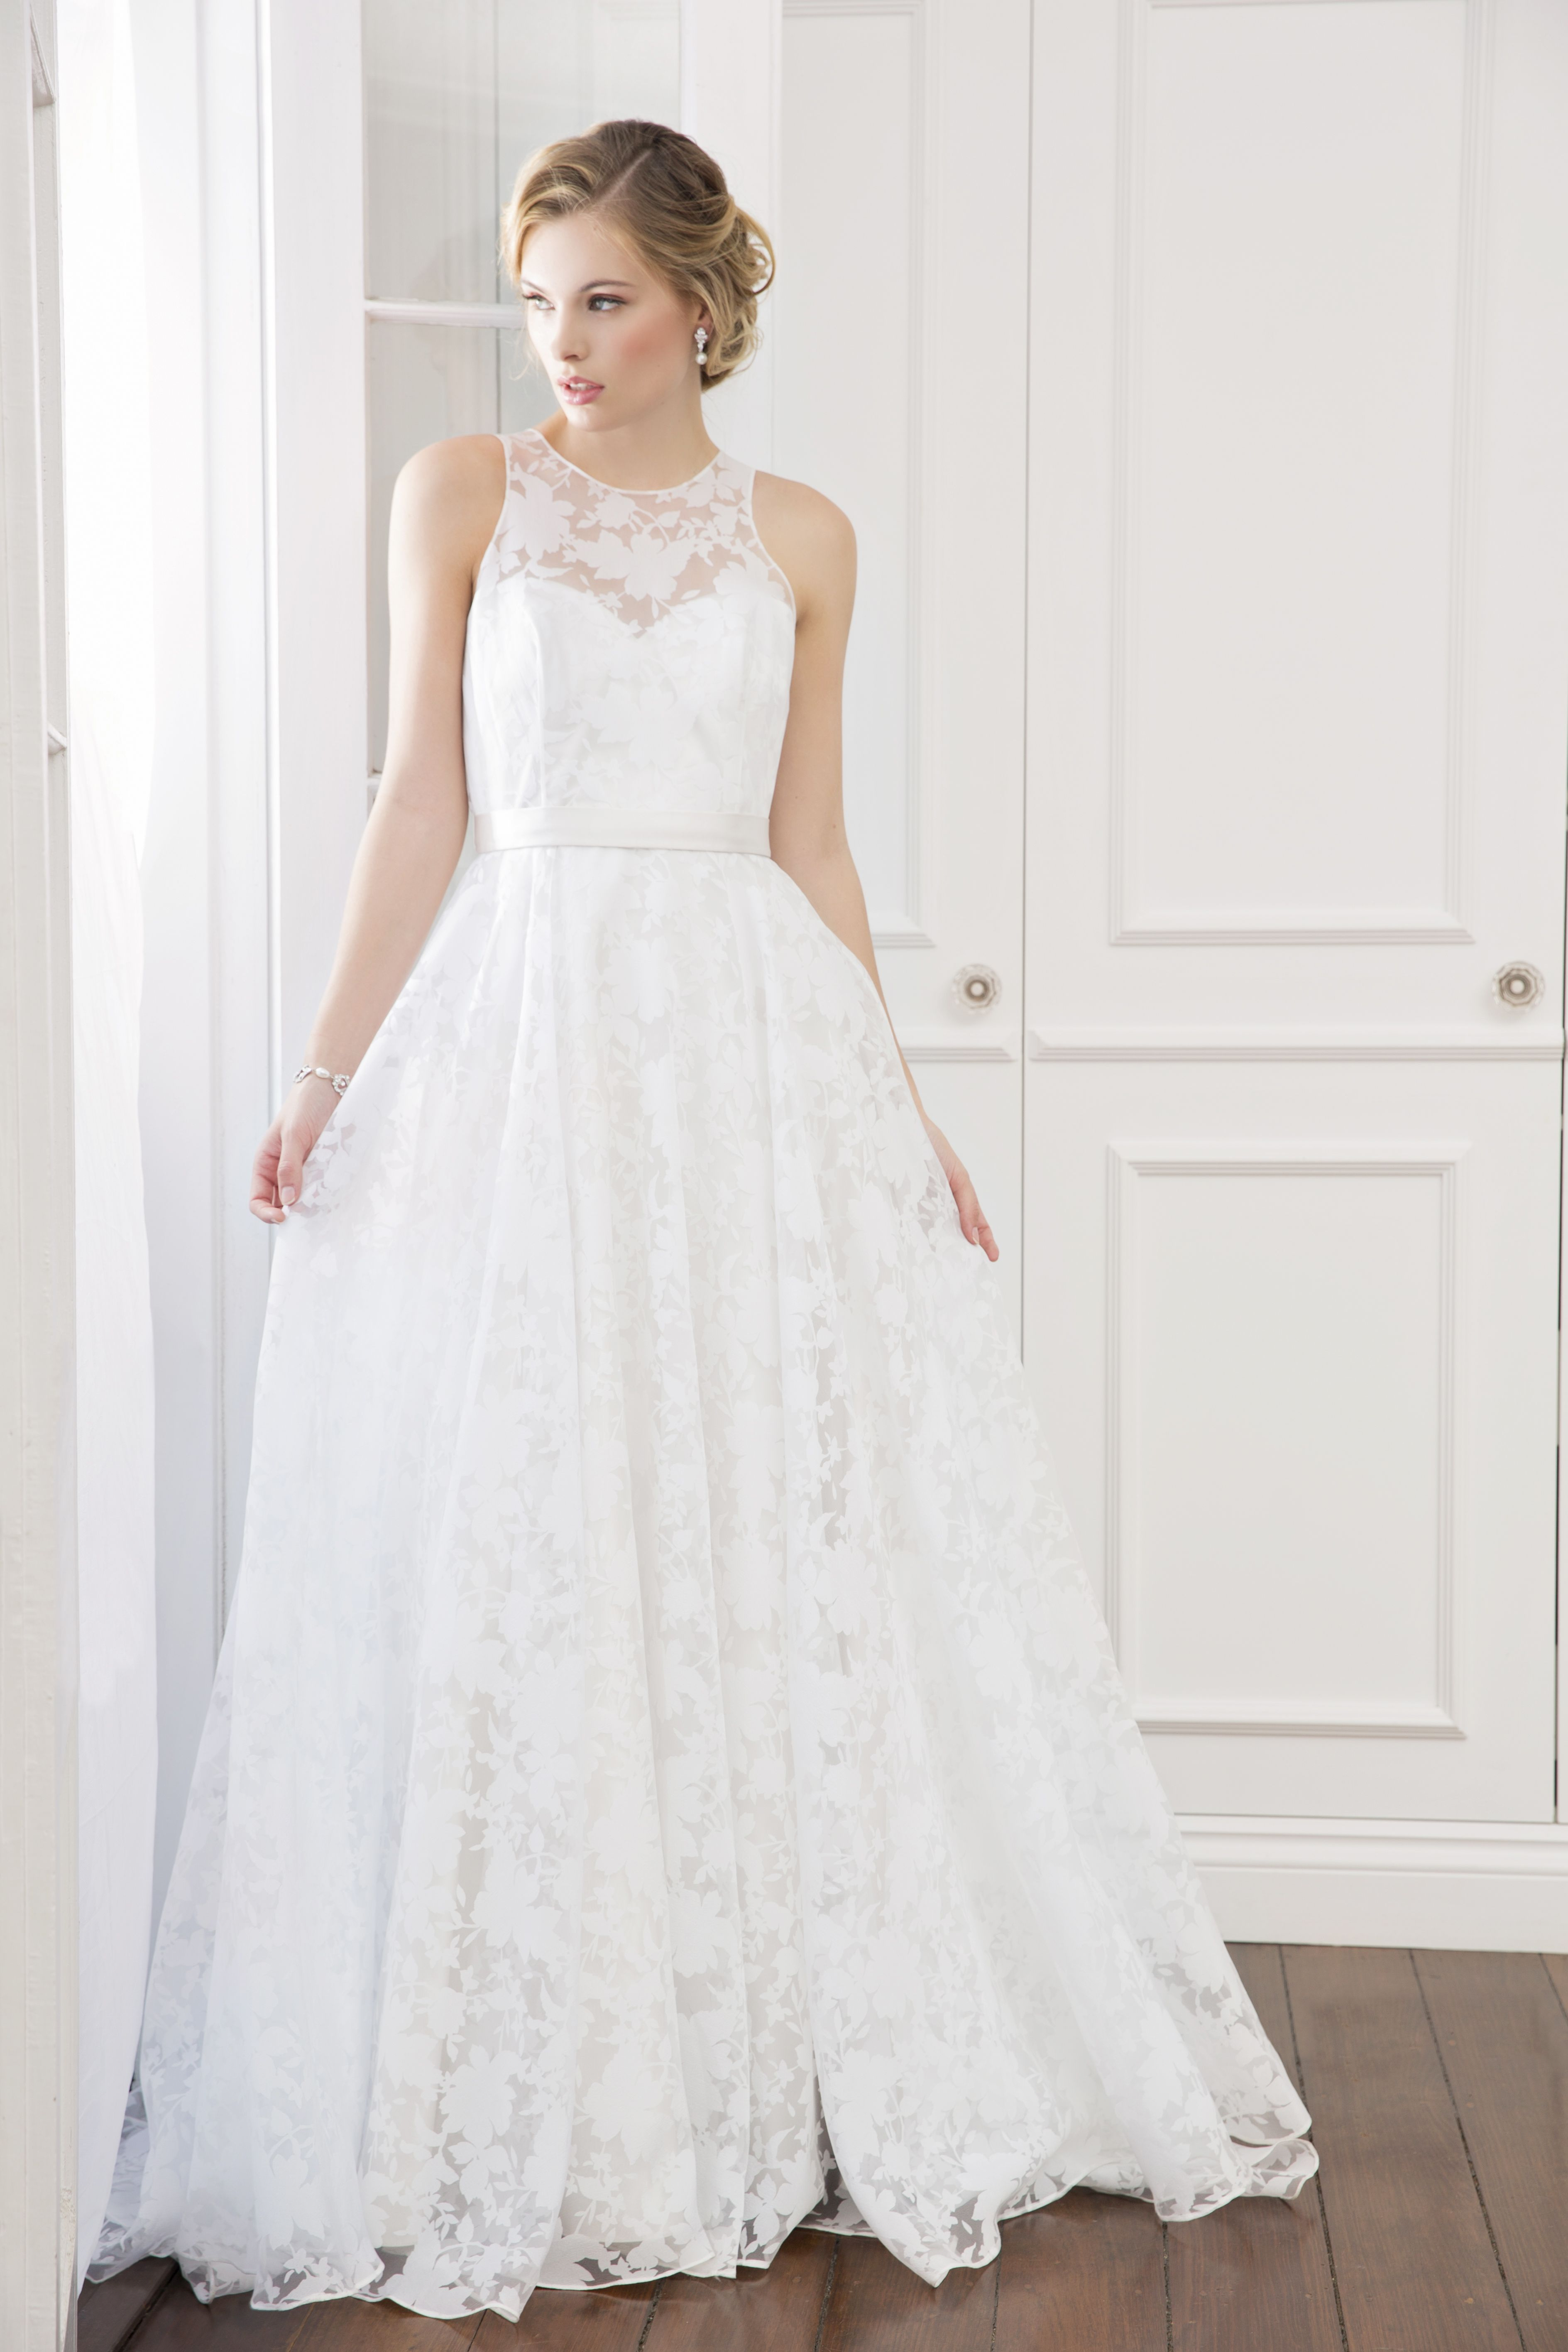 Lydia - Wendy Makin Bridal. floral lace/ high neck/ sweetheart/ ball ...